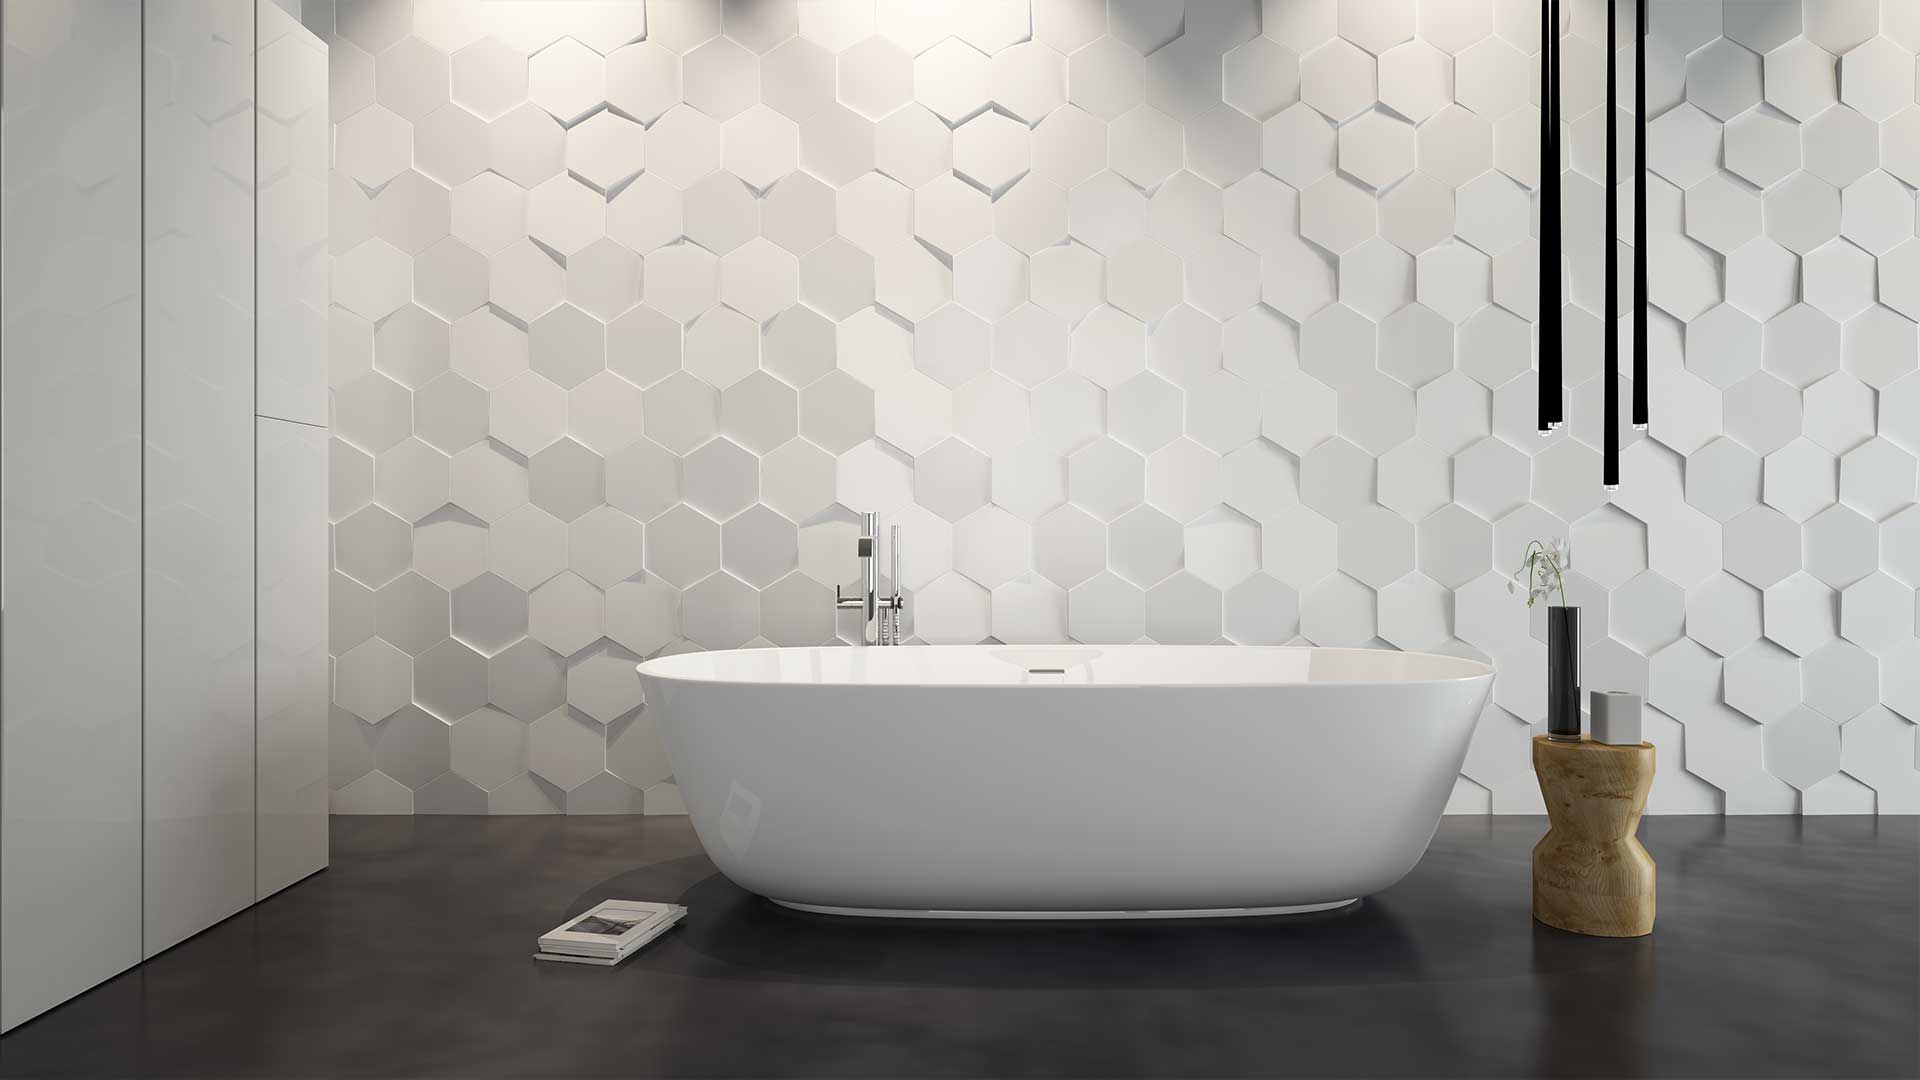 27 wonderful pictures and ideas of italian bathroom wall tiles. Black Bedroom Furniture Sets. Home Design Ideas